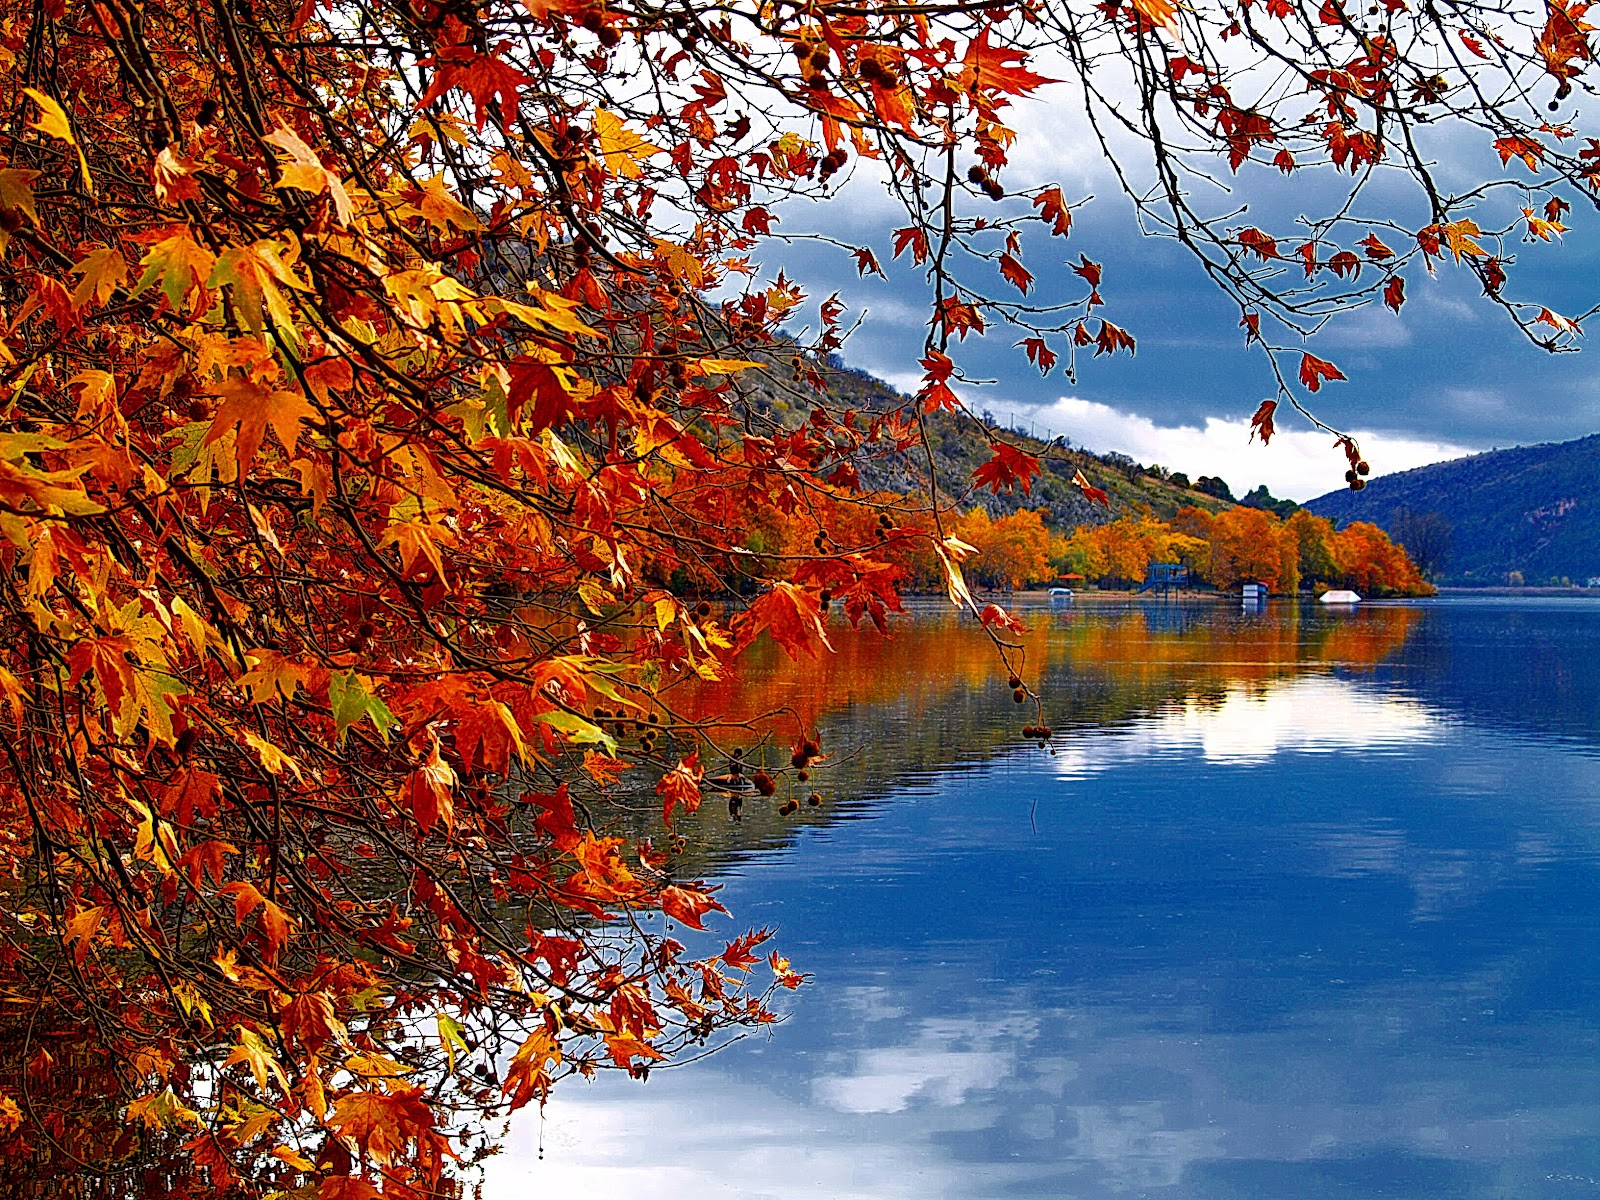 File:Autumn reflection in Kastoria lake, Greece.jpg - Wikimedia ...